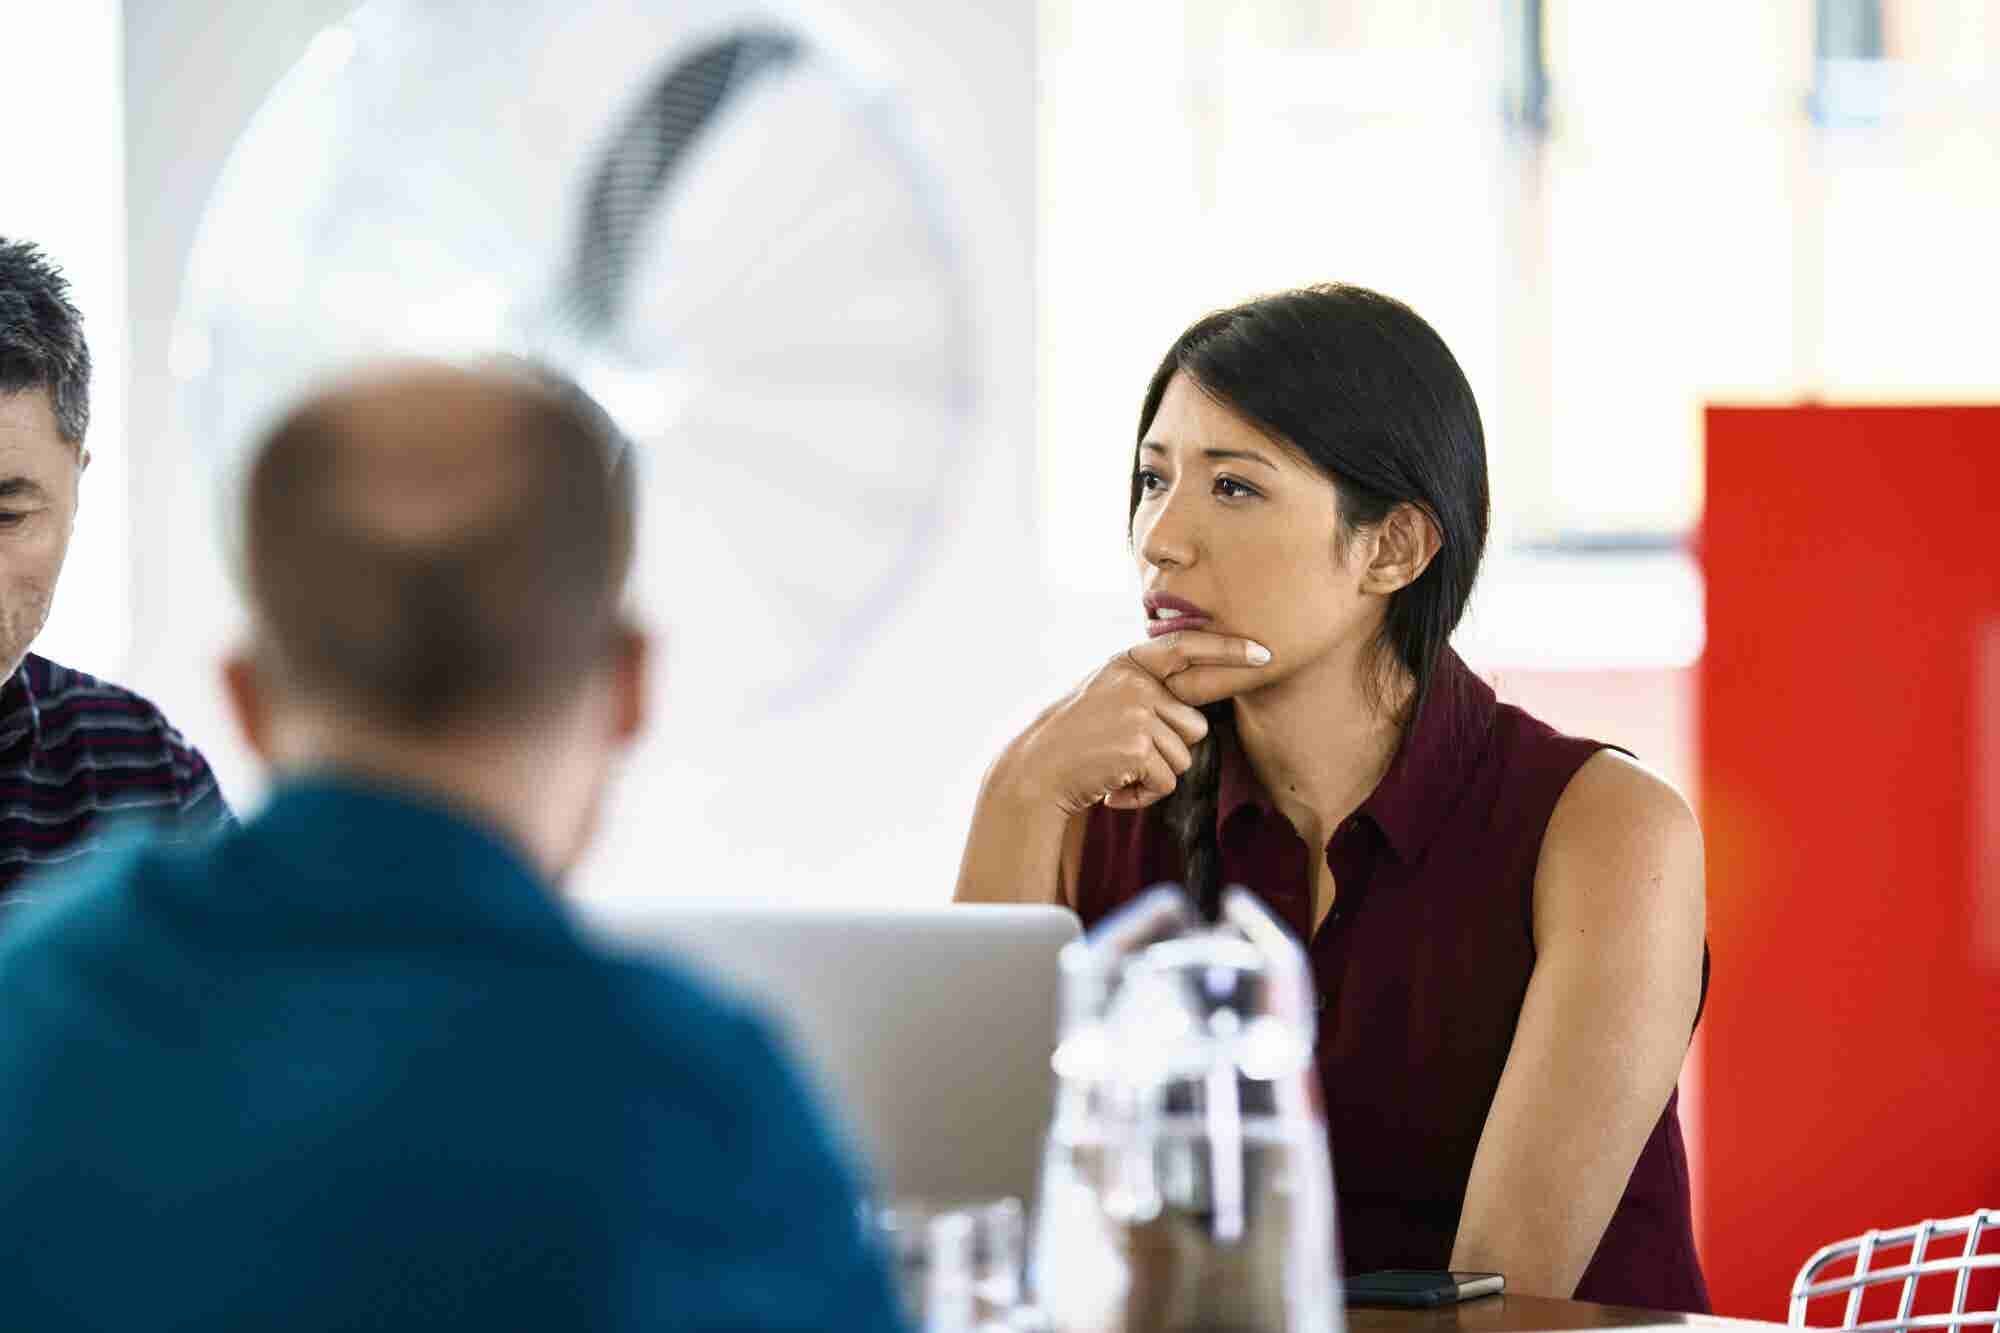 4 Proven Ways Women in Male-Dominated Fields Can Establish Themselves and Feel Fulfilled at Work